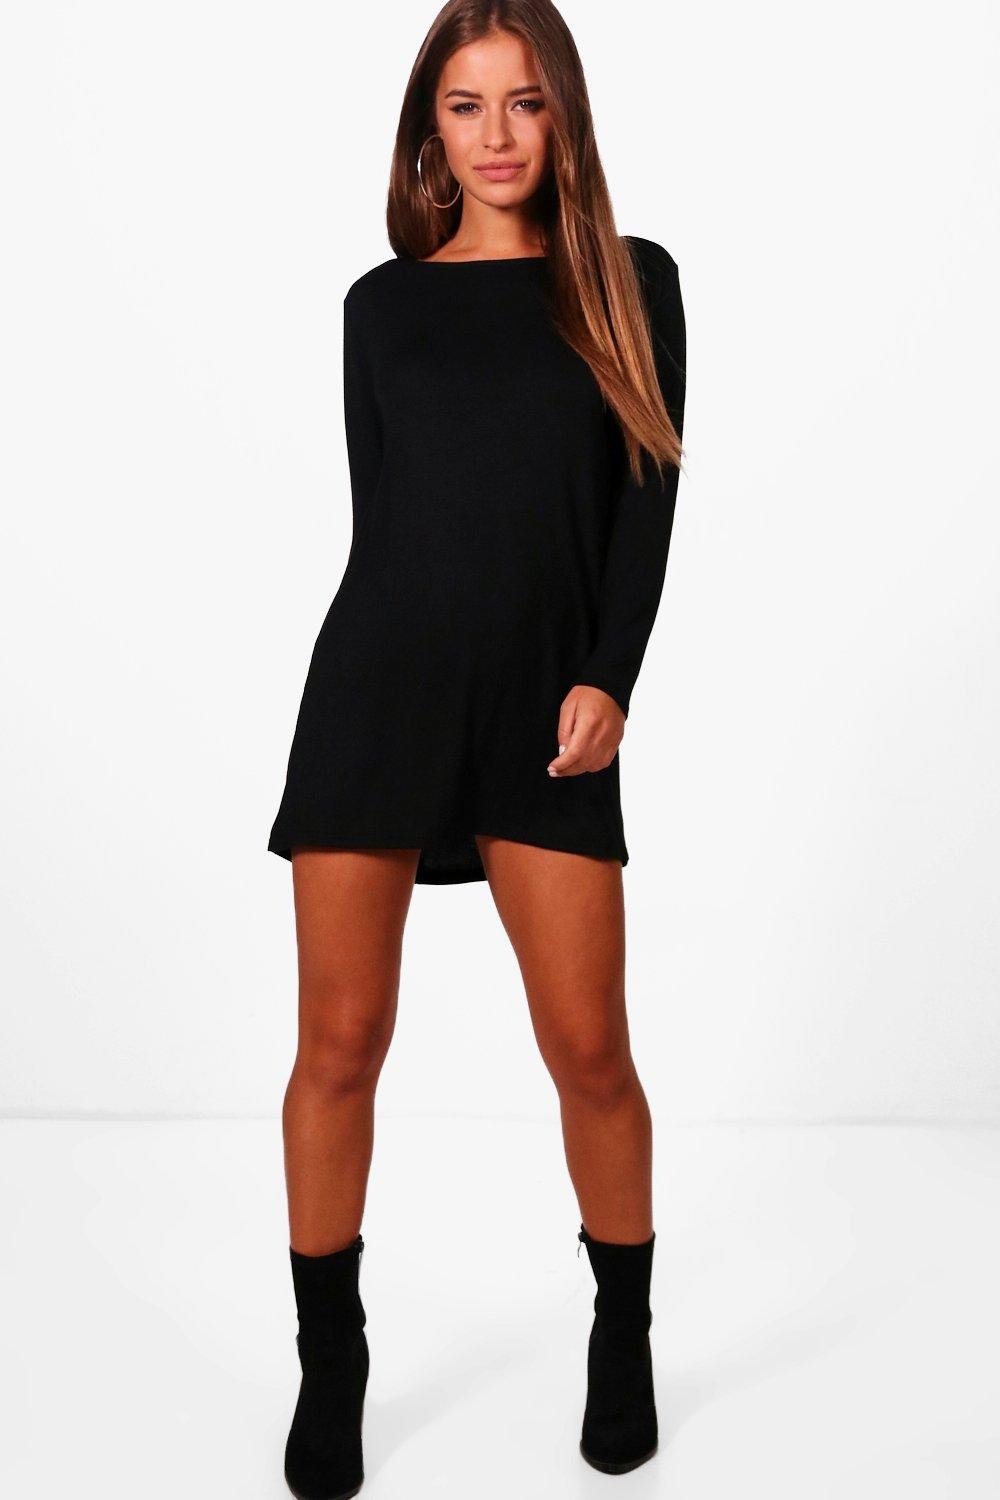 8a5129b1d02 Womens Black Petite Long Sleeve Shift Dress. Hover to zoom